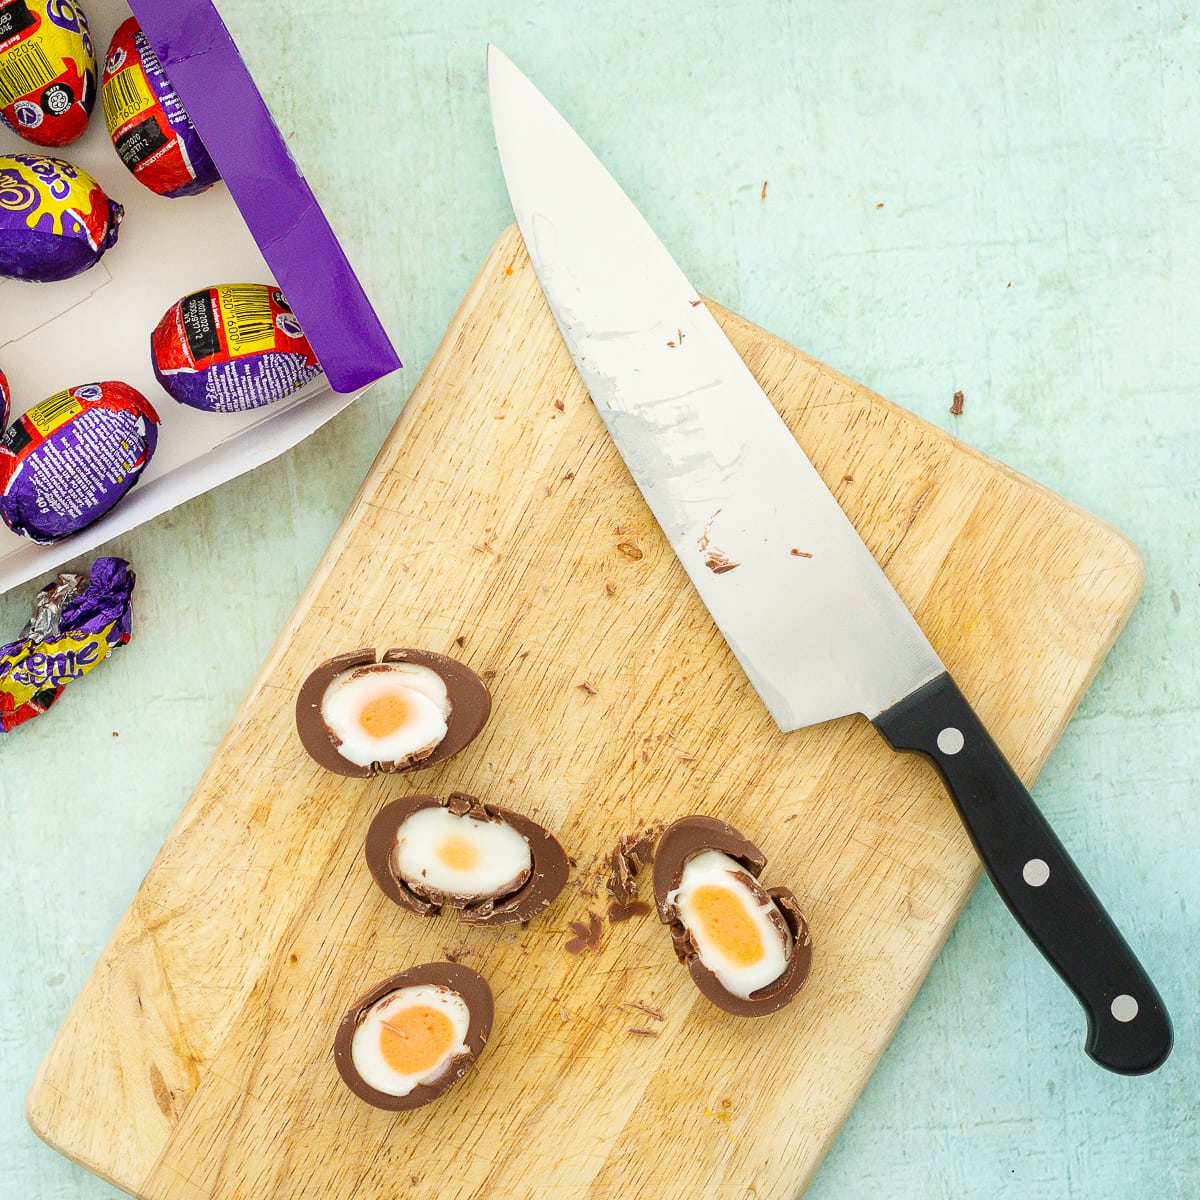 Cut creme eggs in half - for Easy Creme Egg Brownies